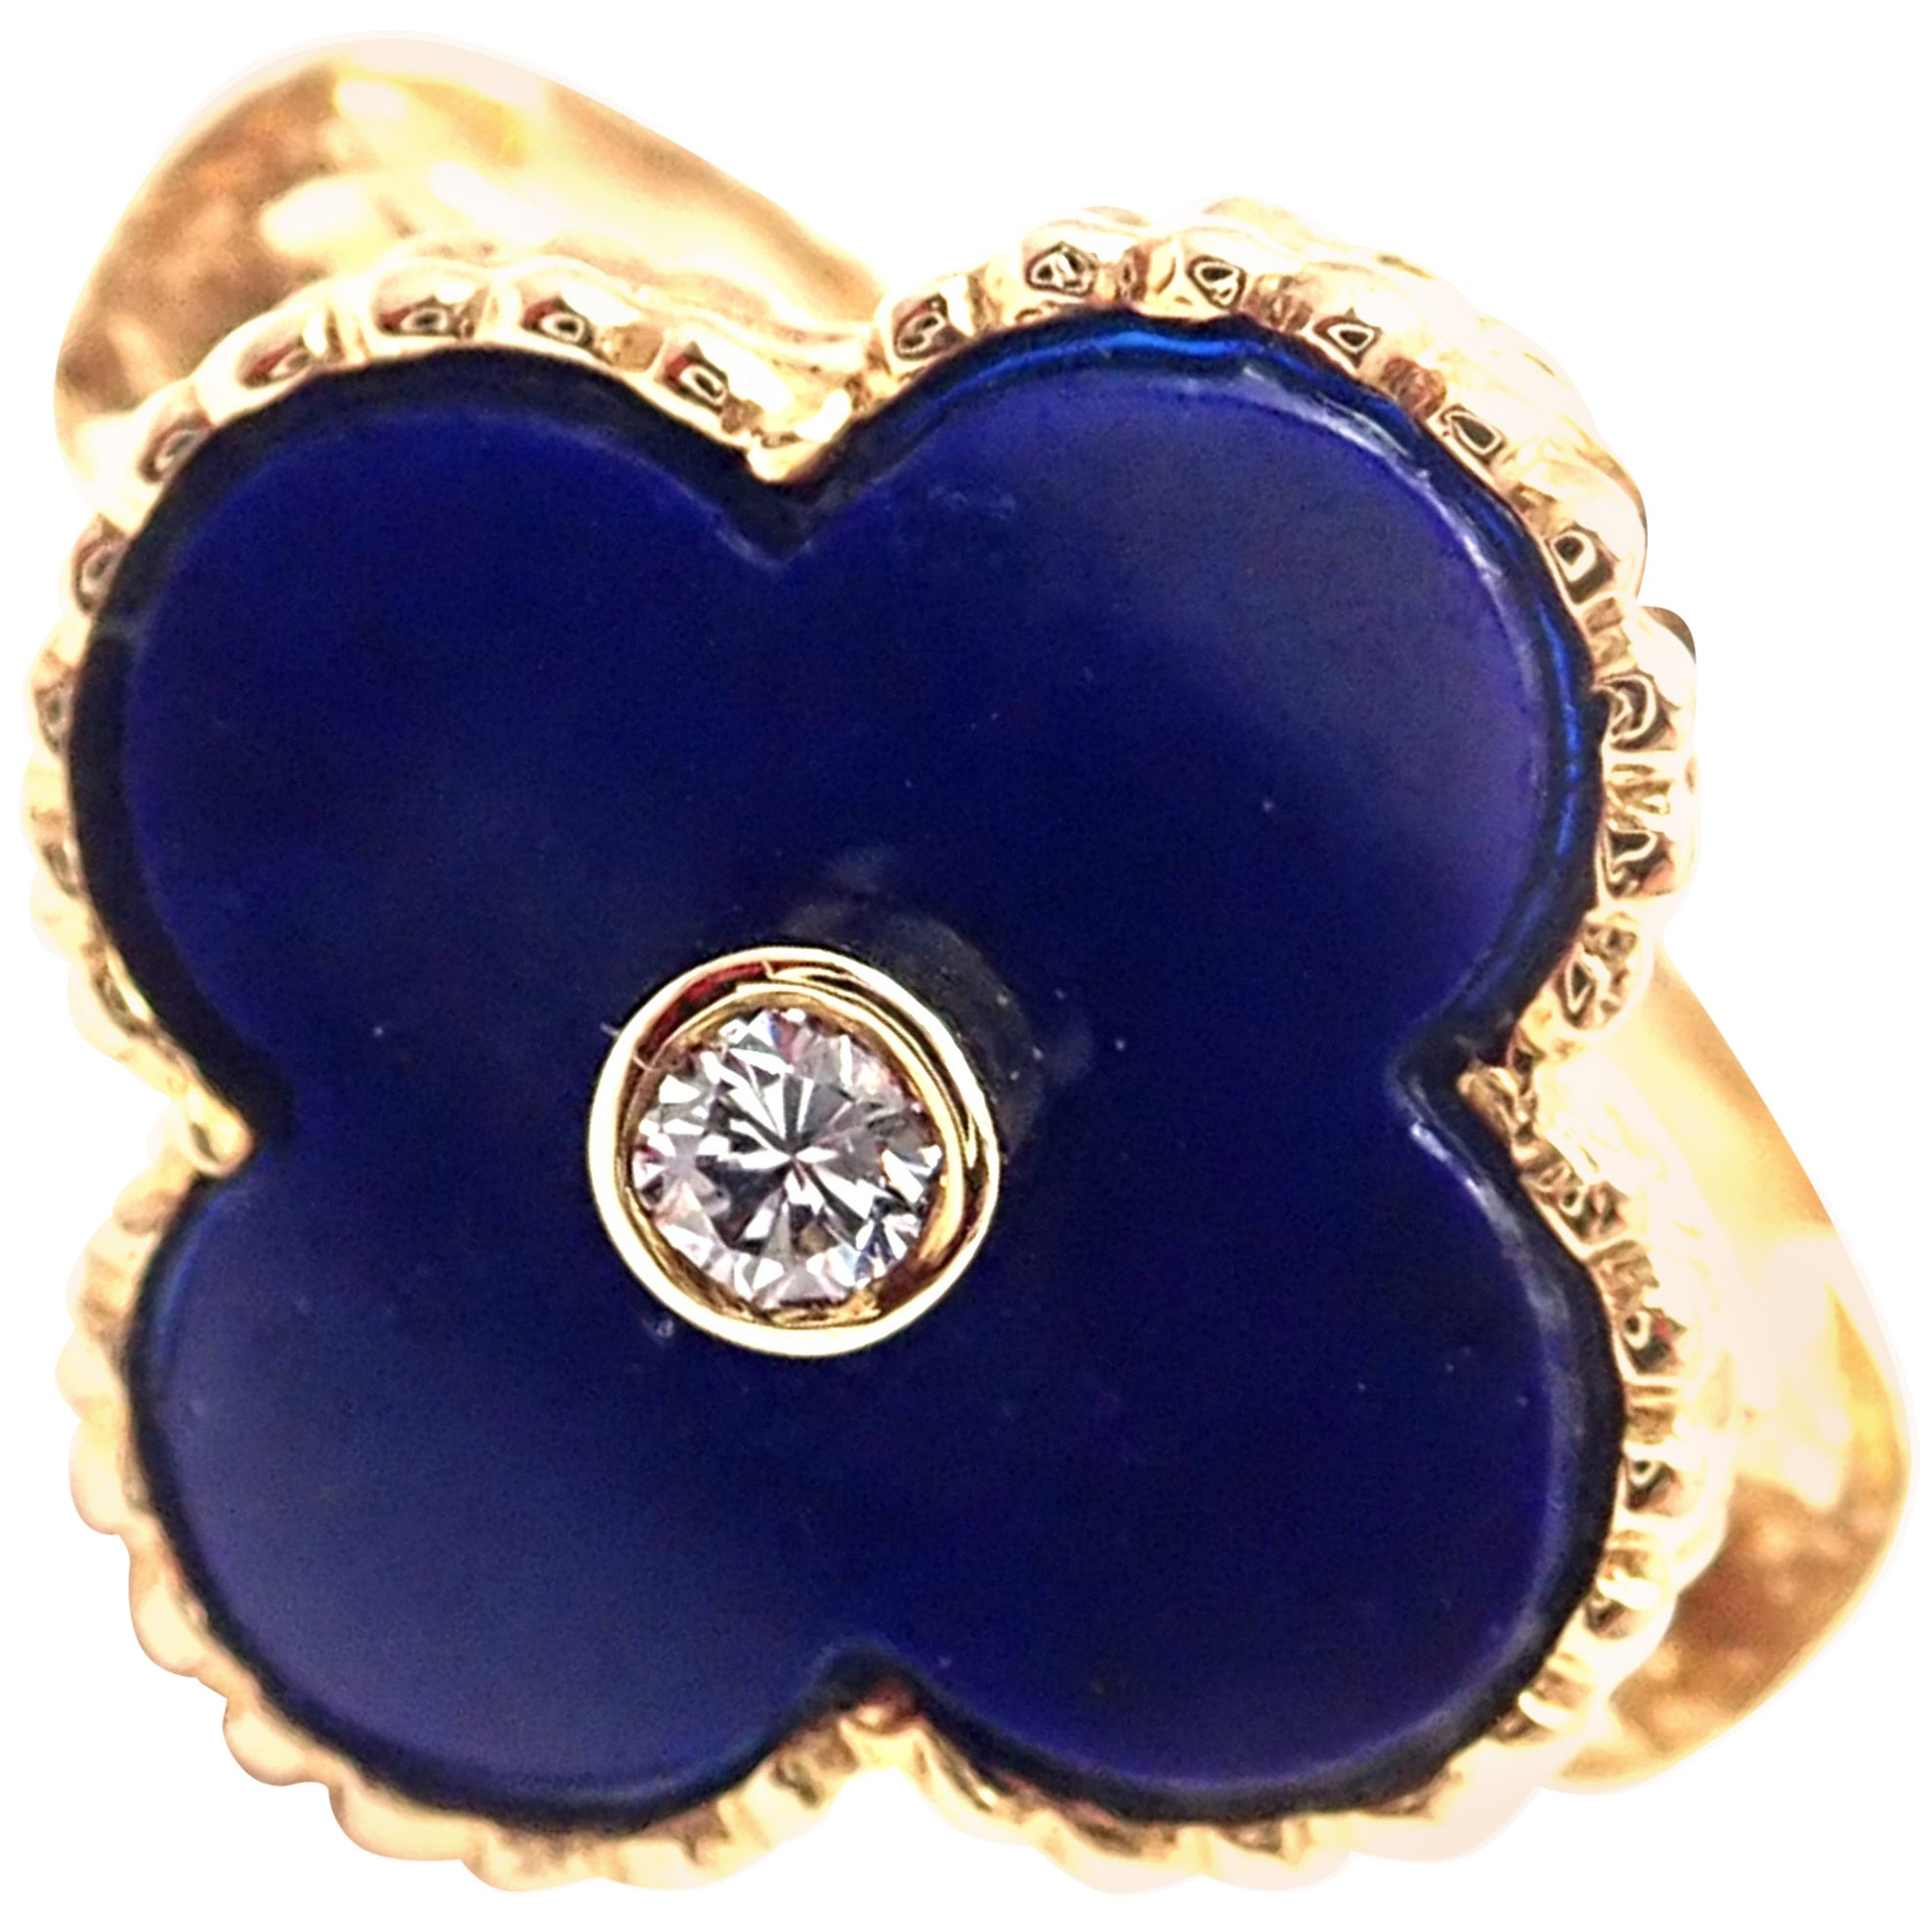 Van Cleef & Arpels Vintage Alhambra Lapis Lazuli Diamond Yellow Gold Ring